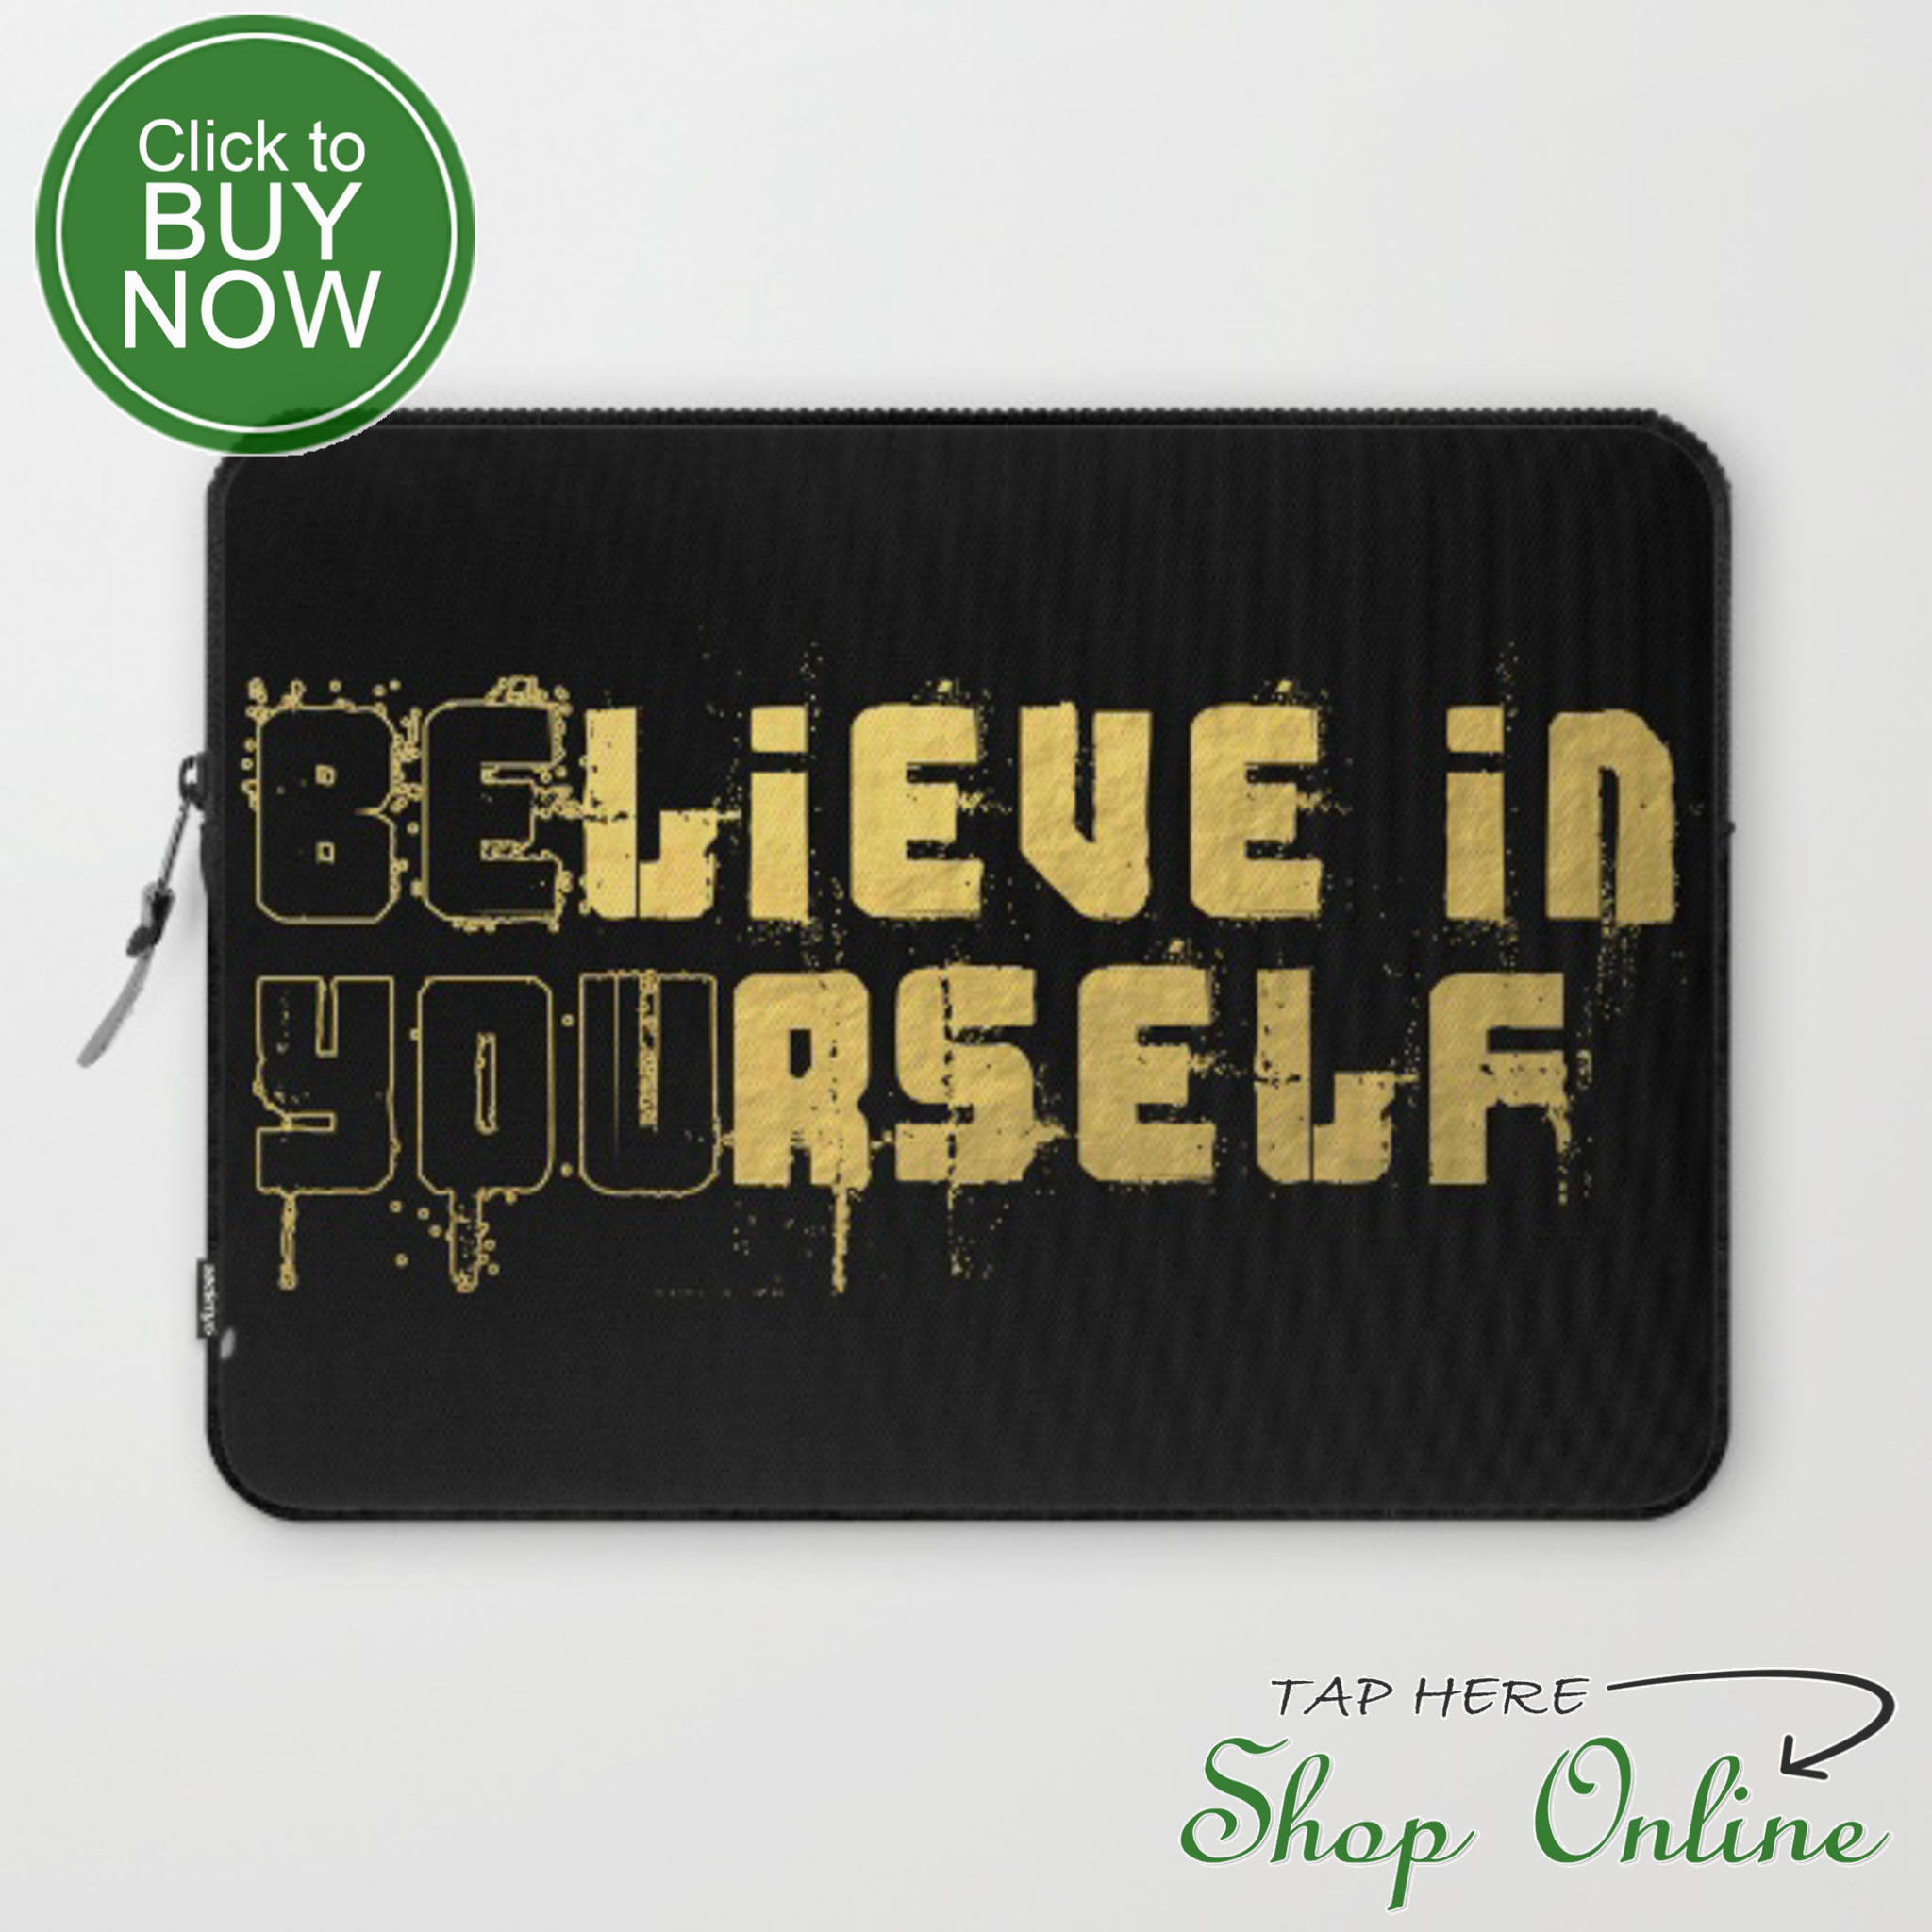 be-you-believe-in-yourself-laptop-sleeves.JPG